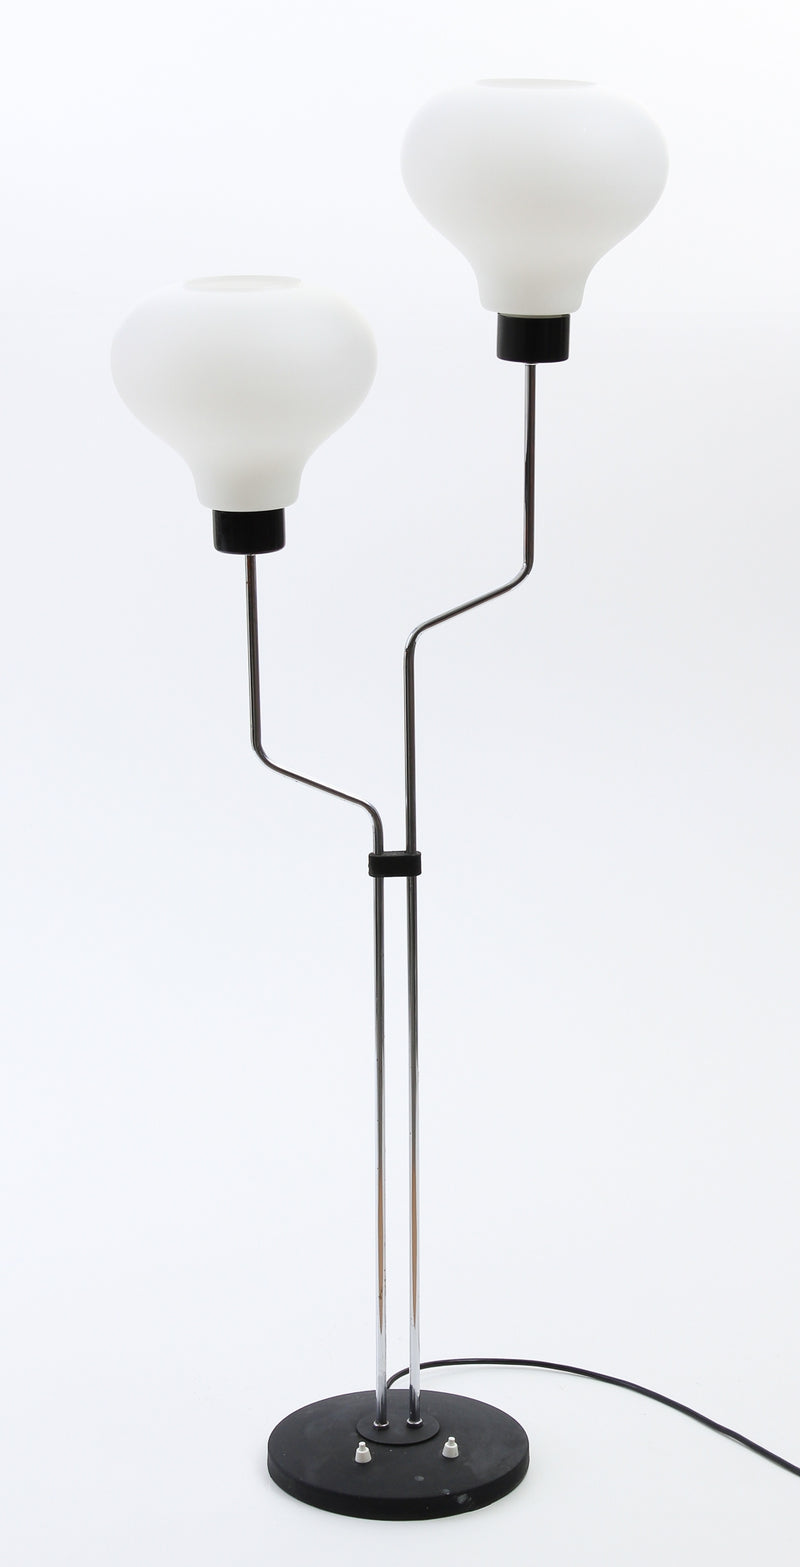 Floor lamp in Chrome and Glass Central Europe 1970s C63